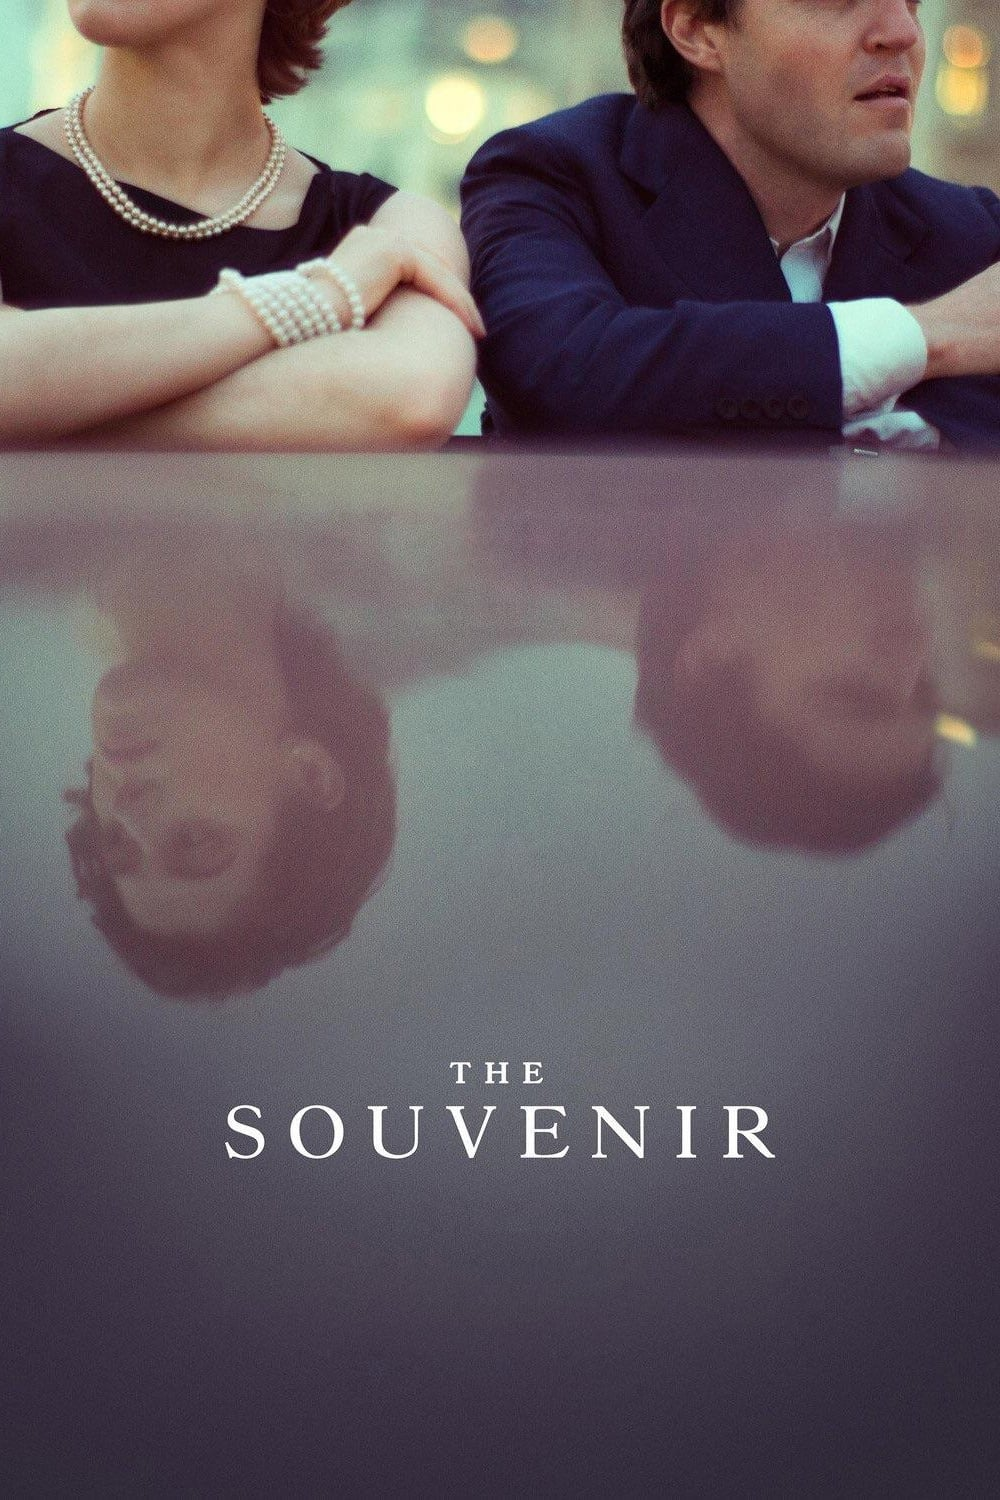 watch The Souvenir 2019 yesmovies online free